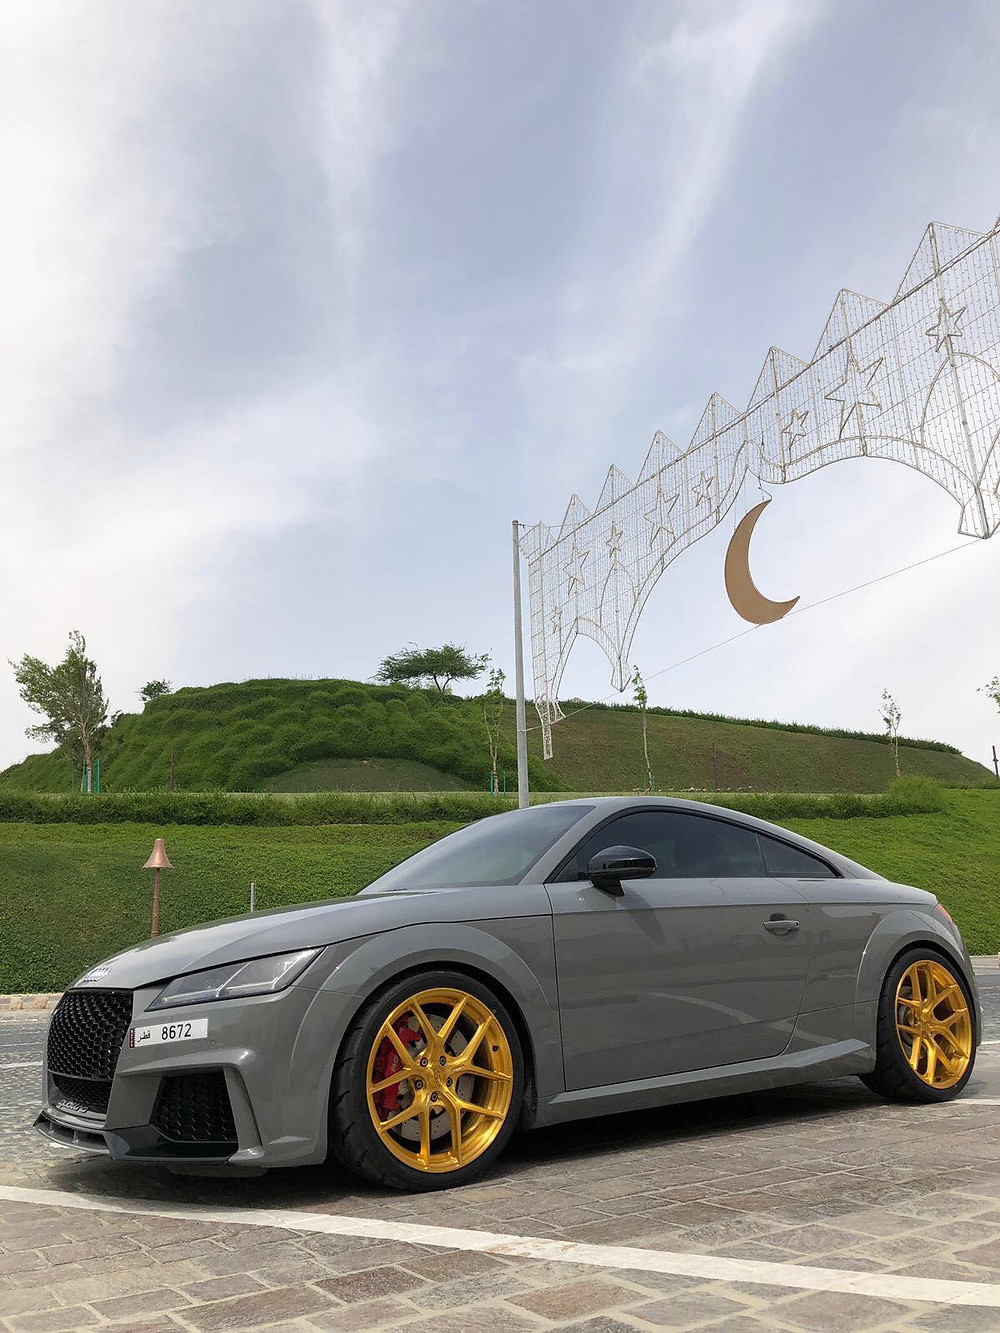 nerd grey audi TTRS with bursted gold wheels